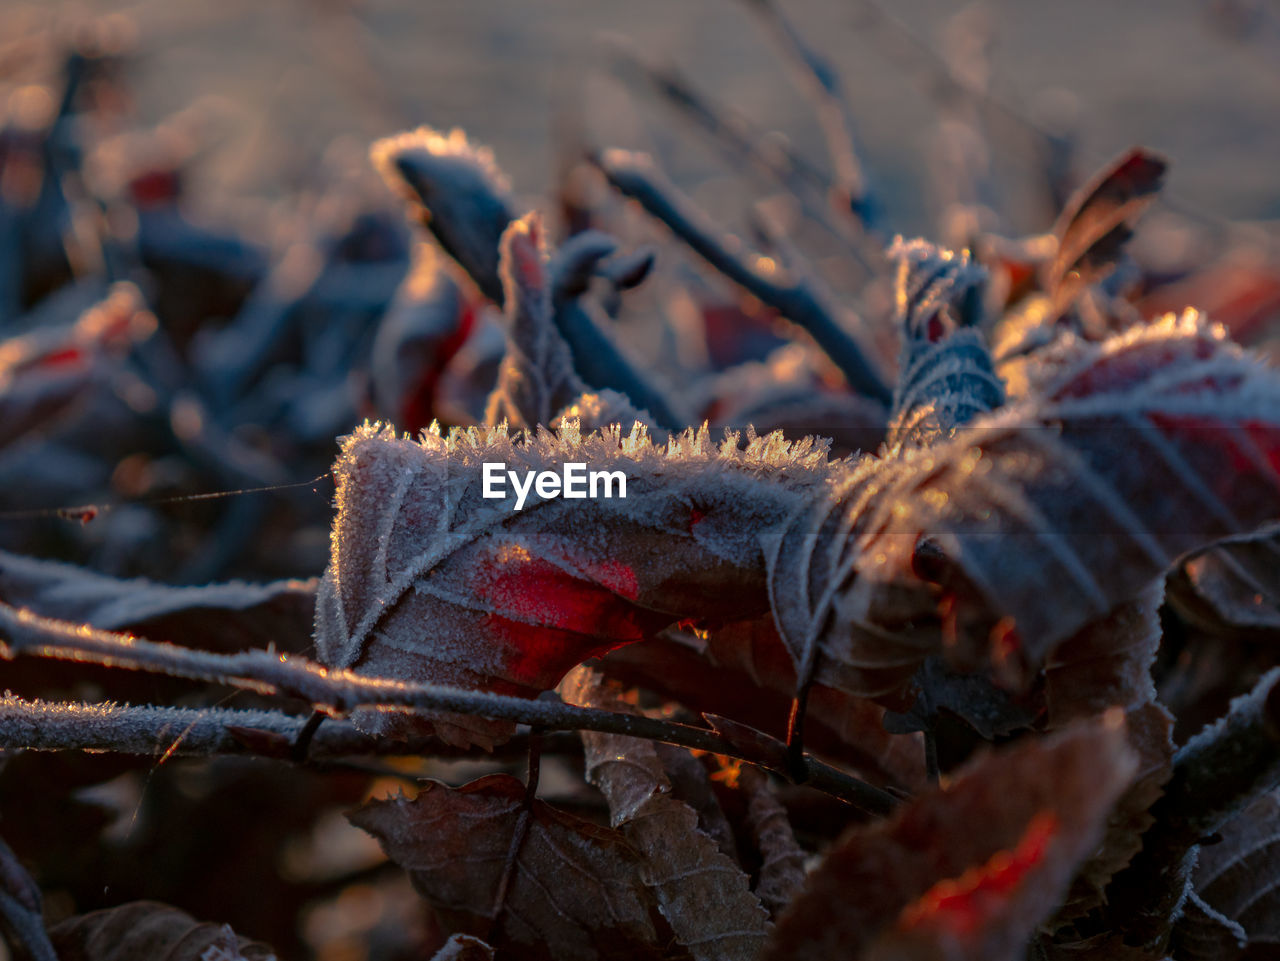 leaf, plant part, close-up, selective focus, nature, no people, day, winter, leaves, cold temperature, autumn, plant, dry, outdoors, change, land, focus on foreground, beauty in nature, tree